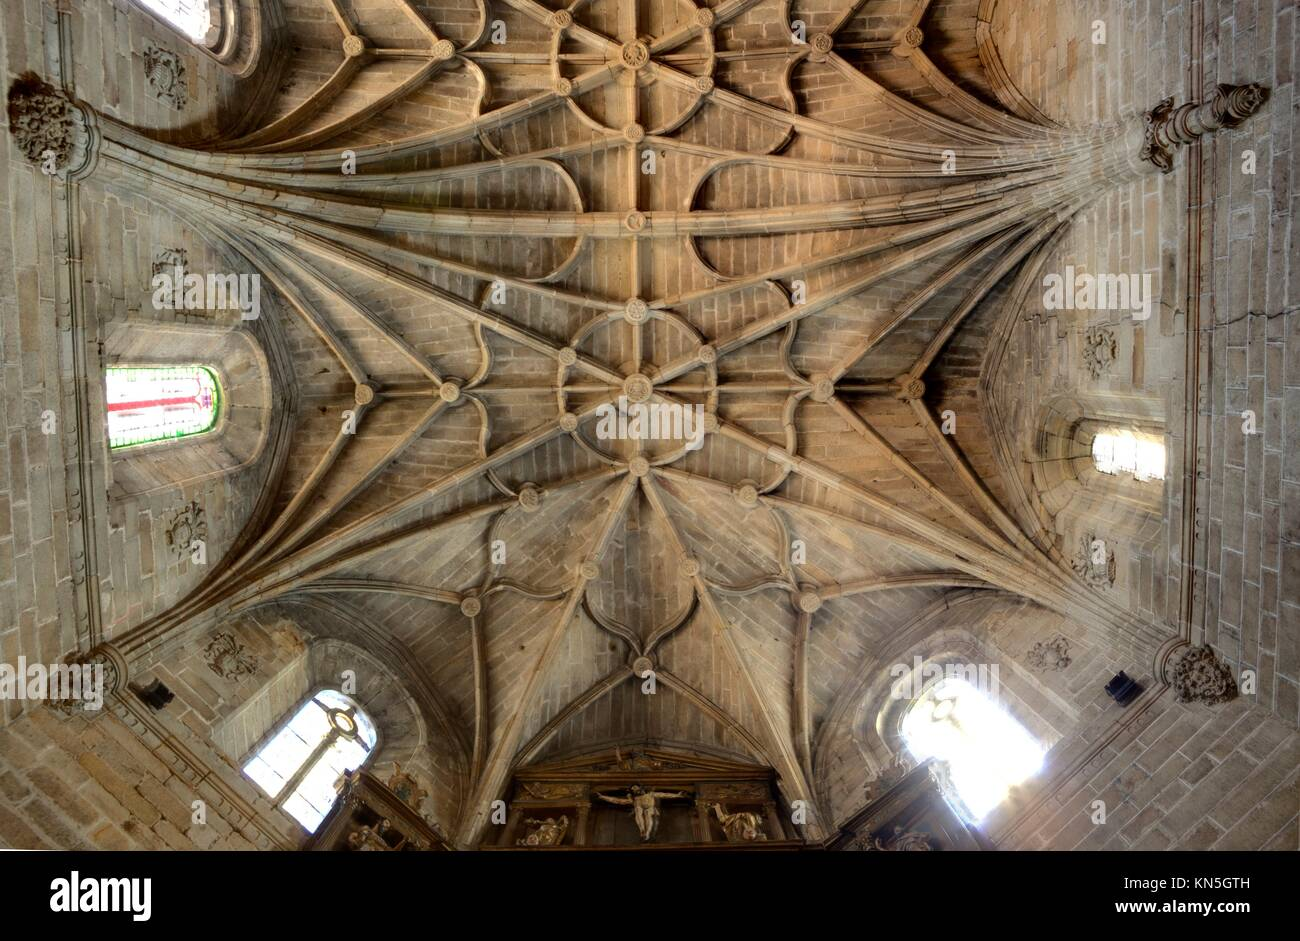 Typcal Gothic cross vault made of granite stone, Caceres, Spain. - Stock Image